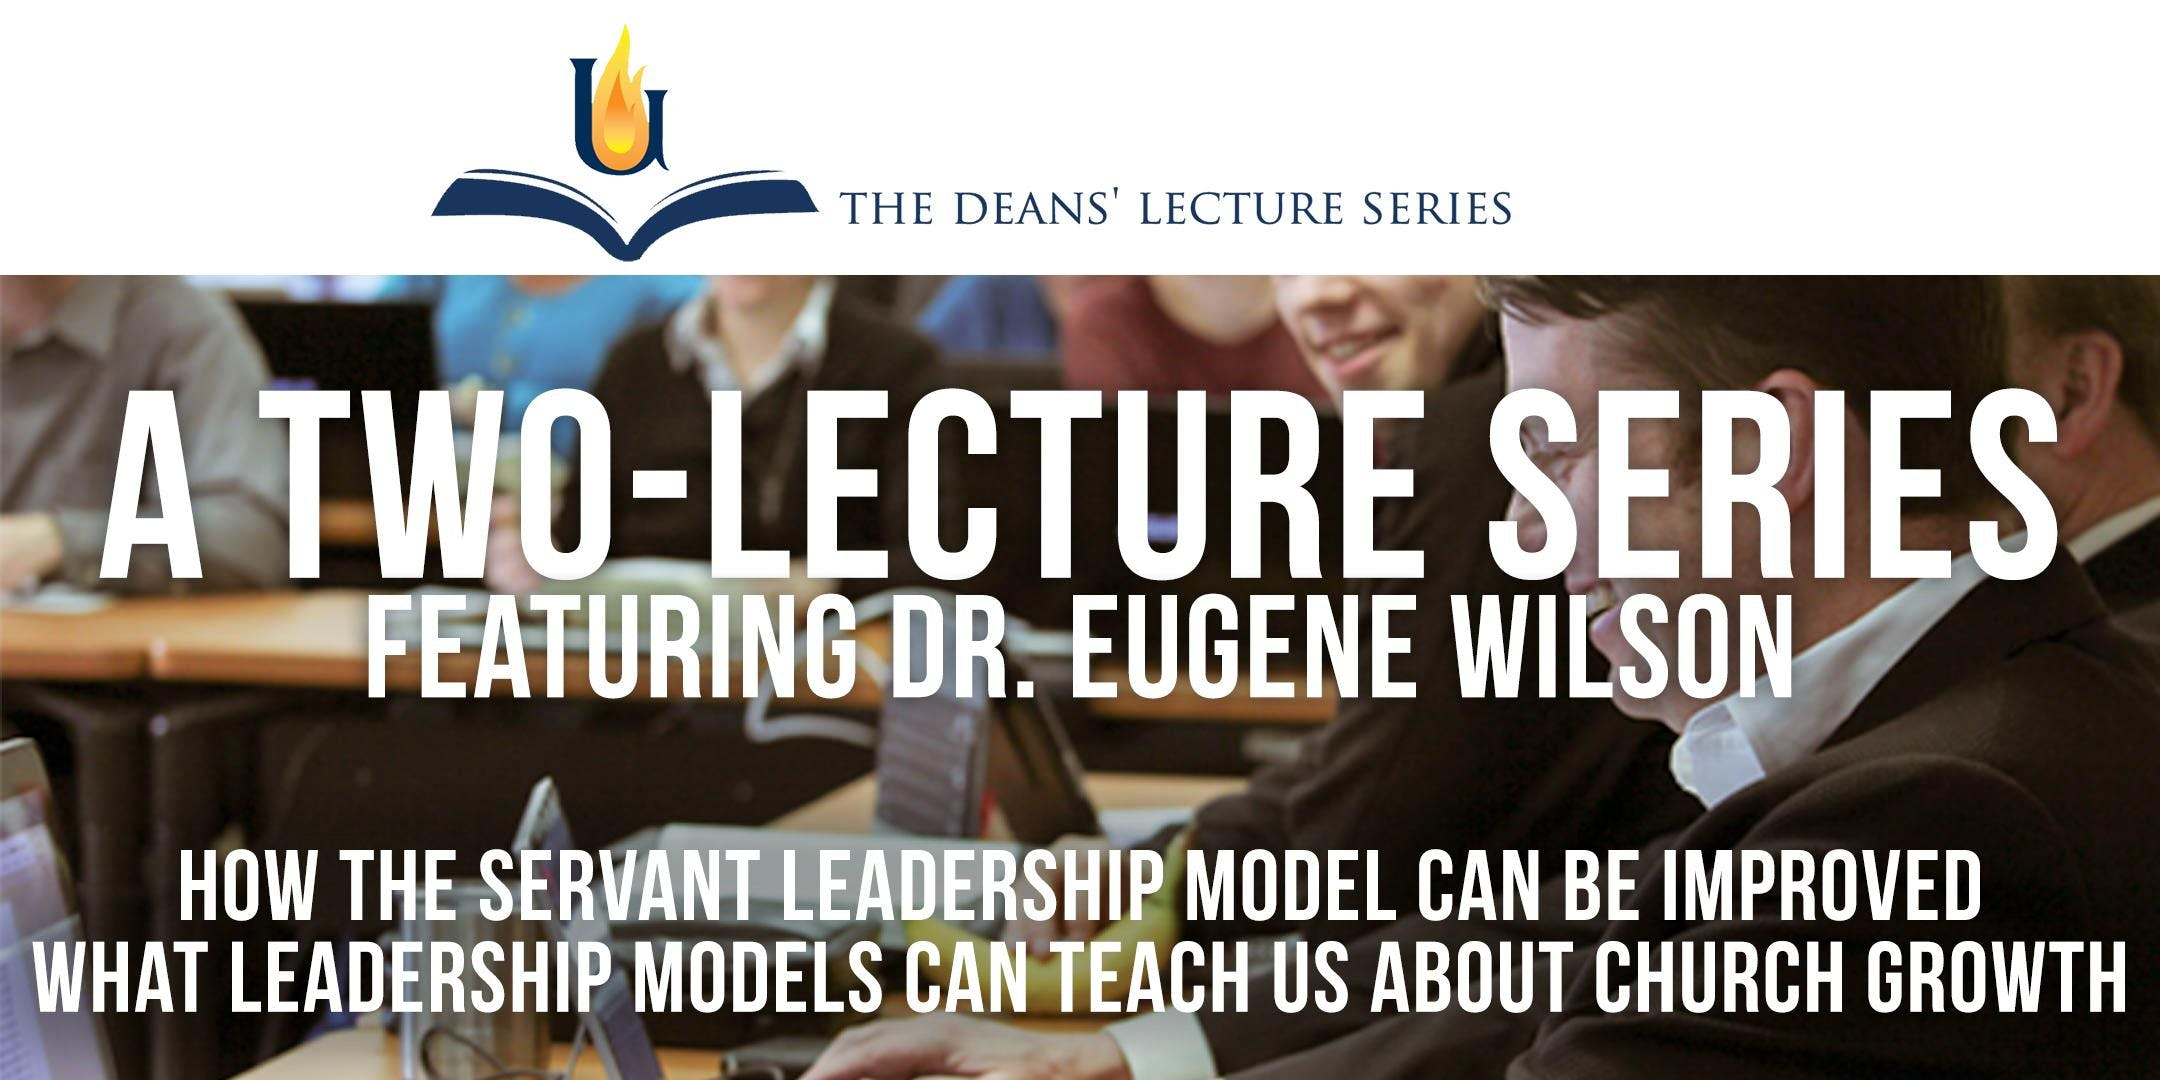 The Deans' Lecture Series: A Two-Lecture Seri